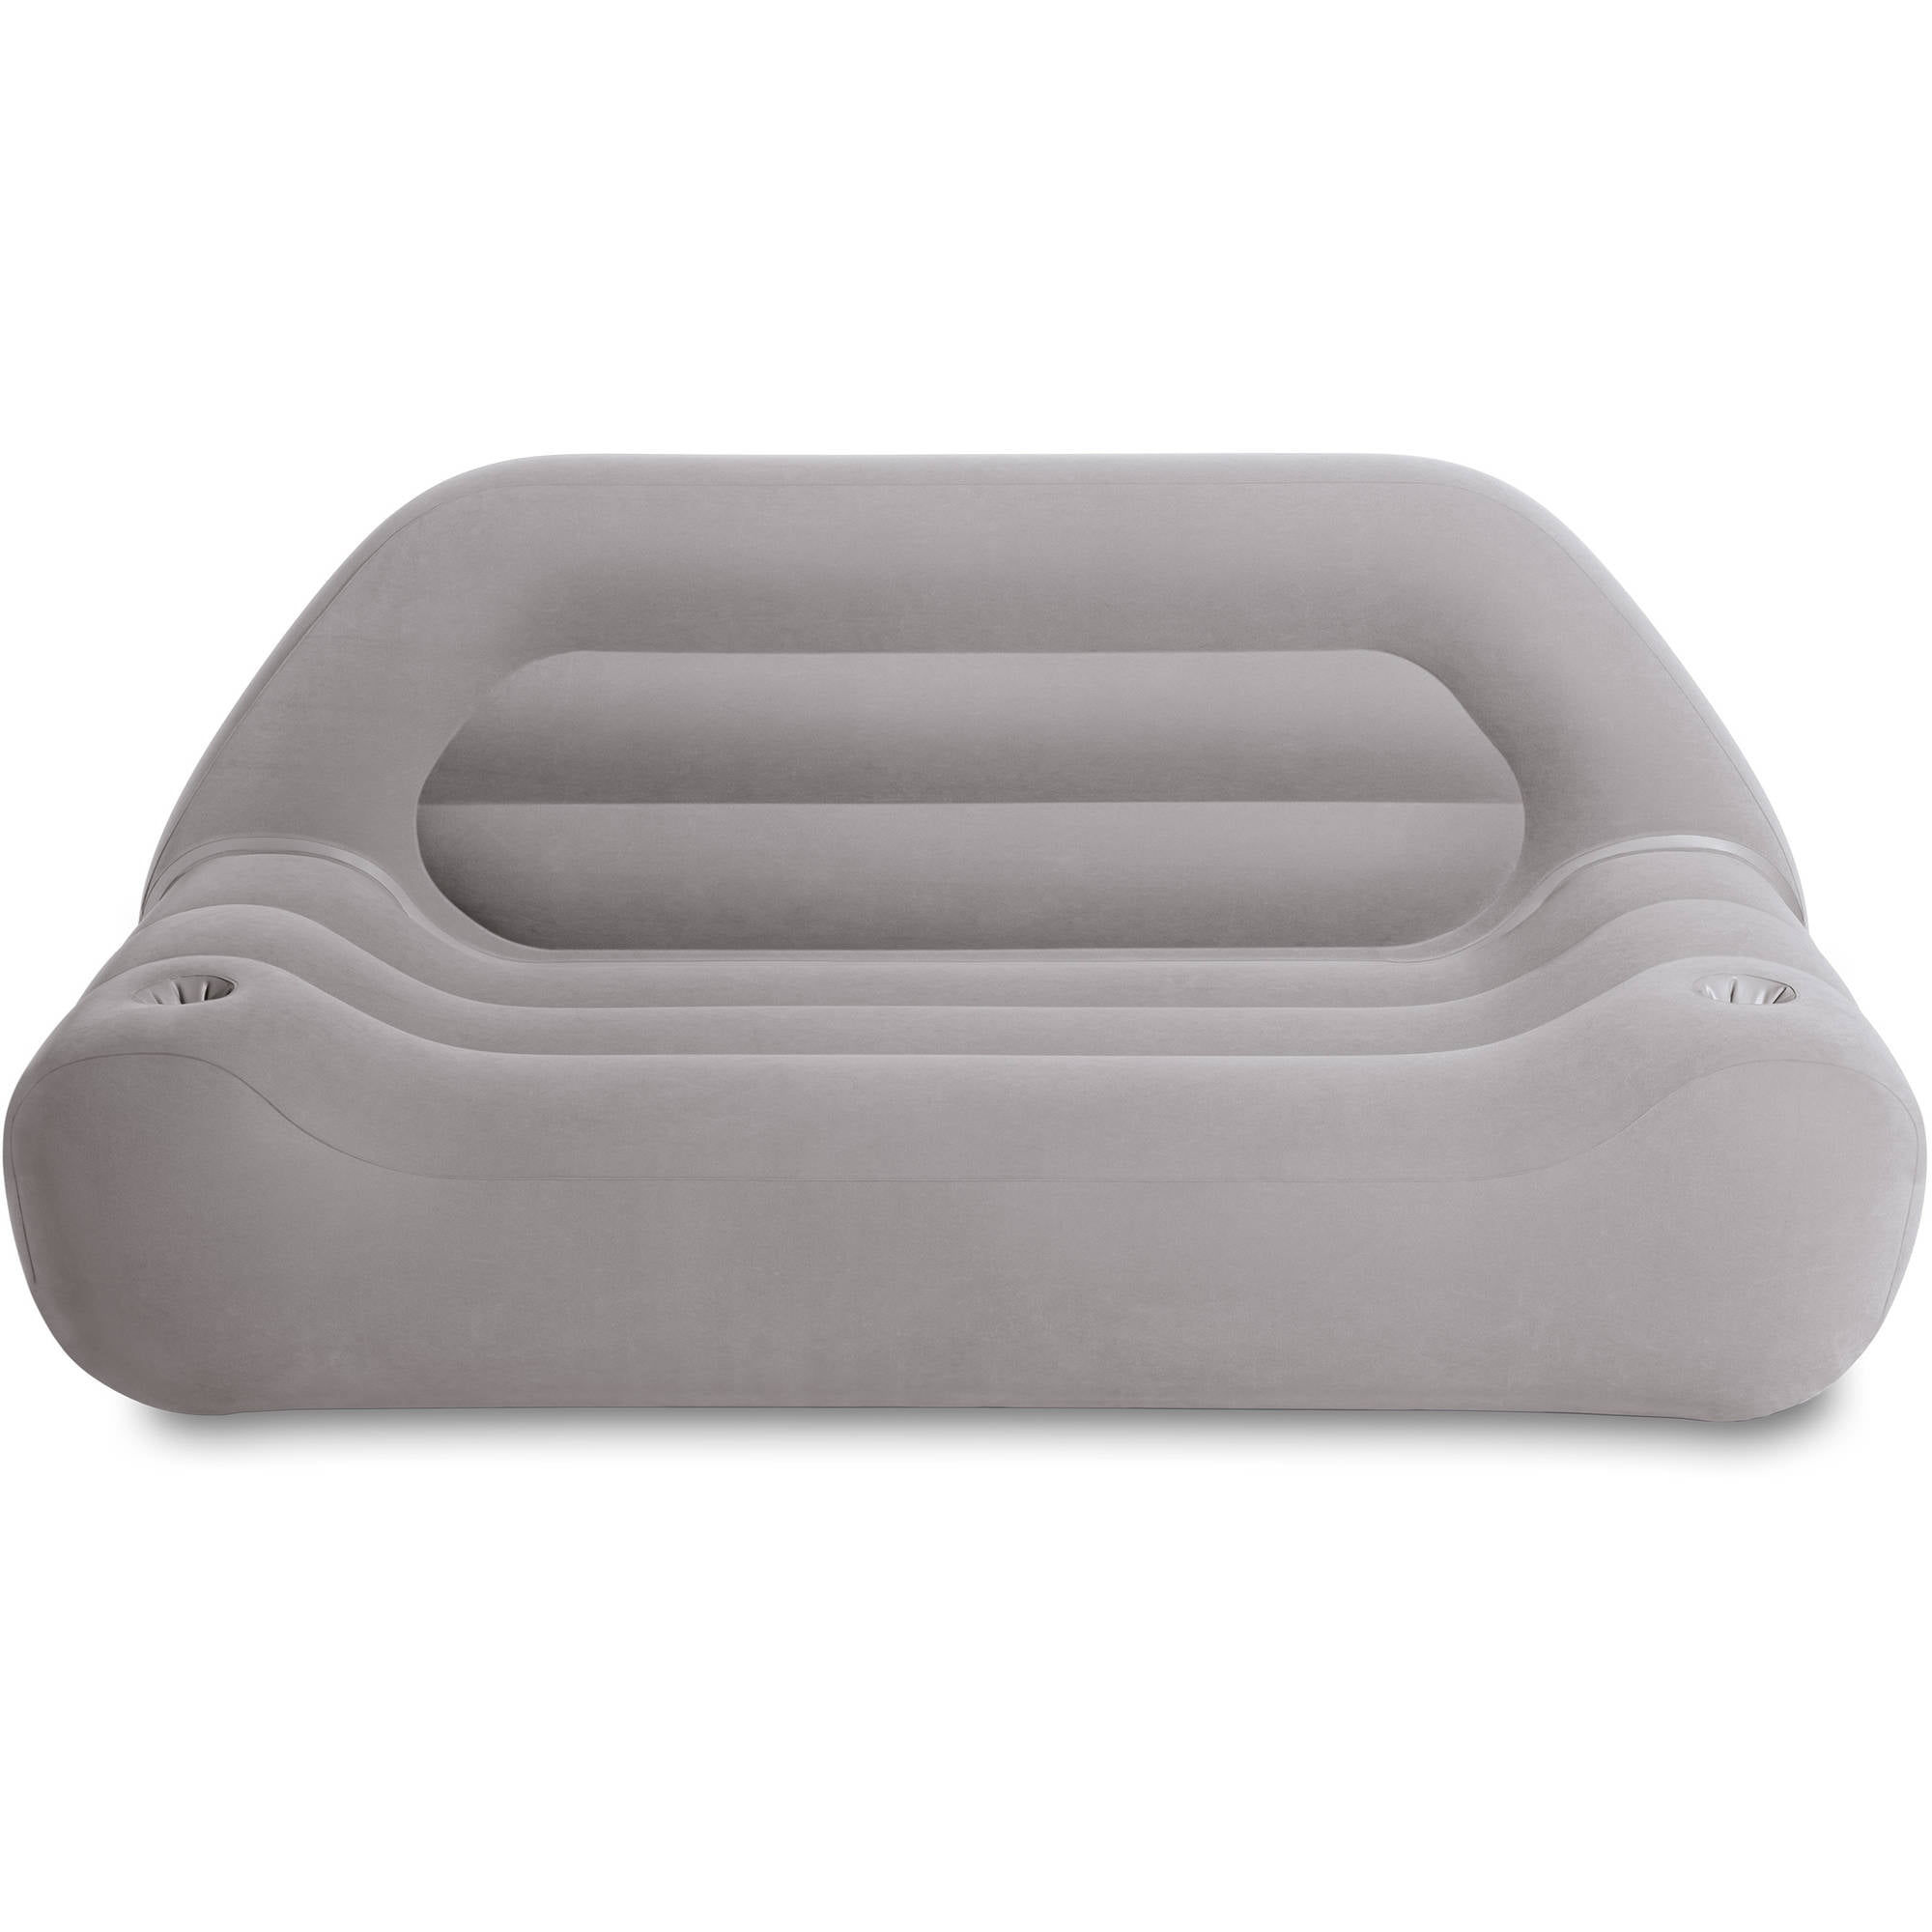 Intex Sofa | Intex Inflatable Camping Sofa 75 X 37 X 34 Walmart Com